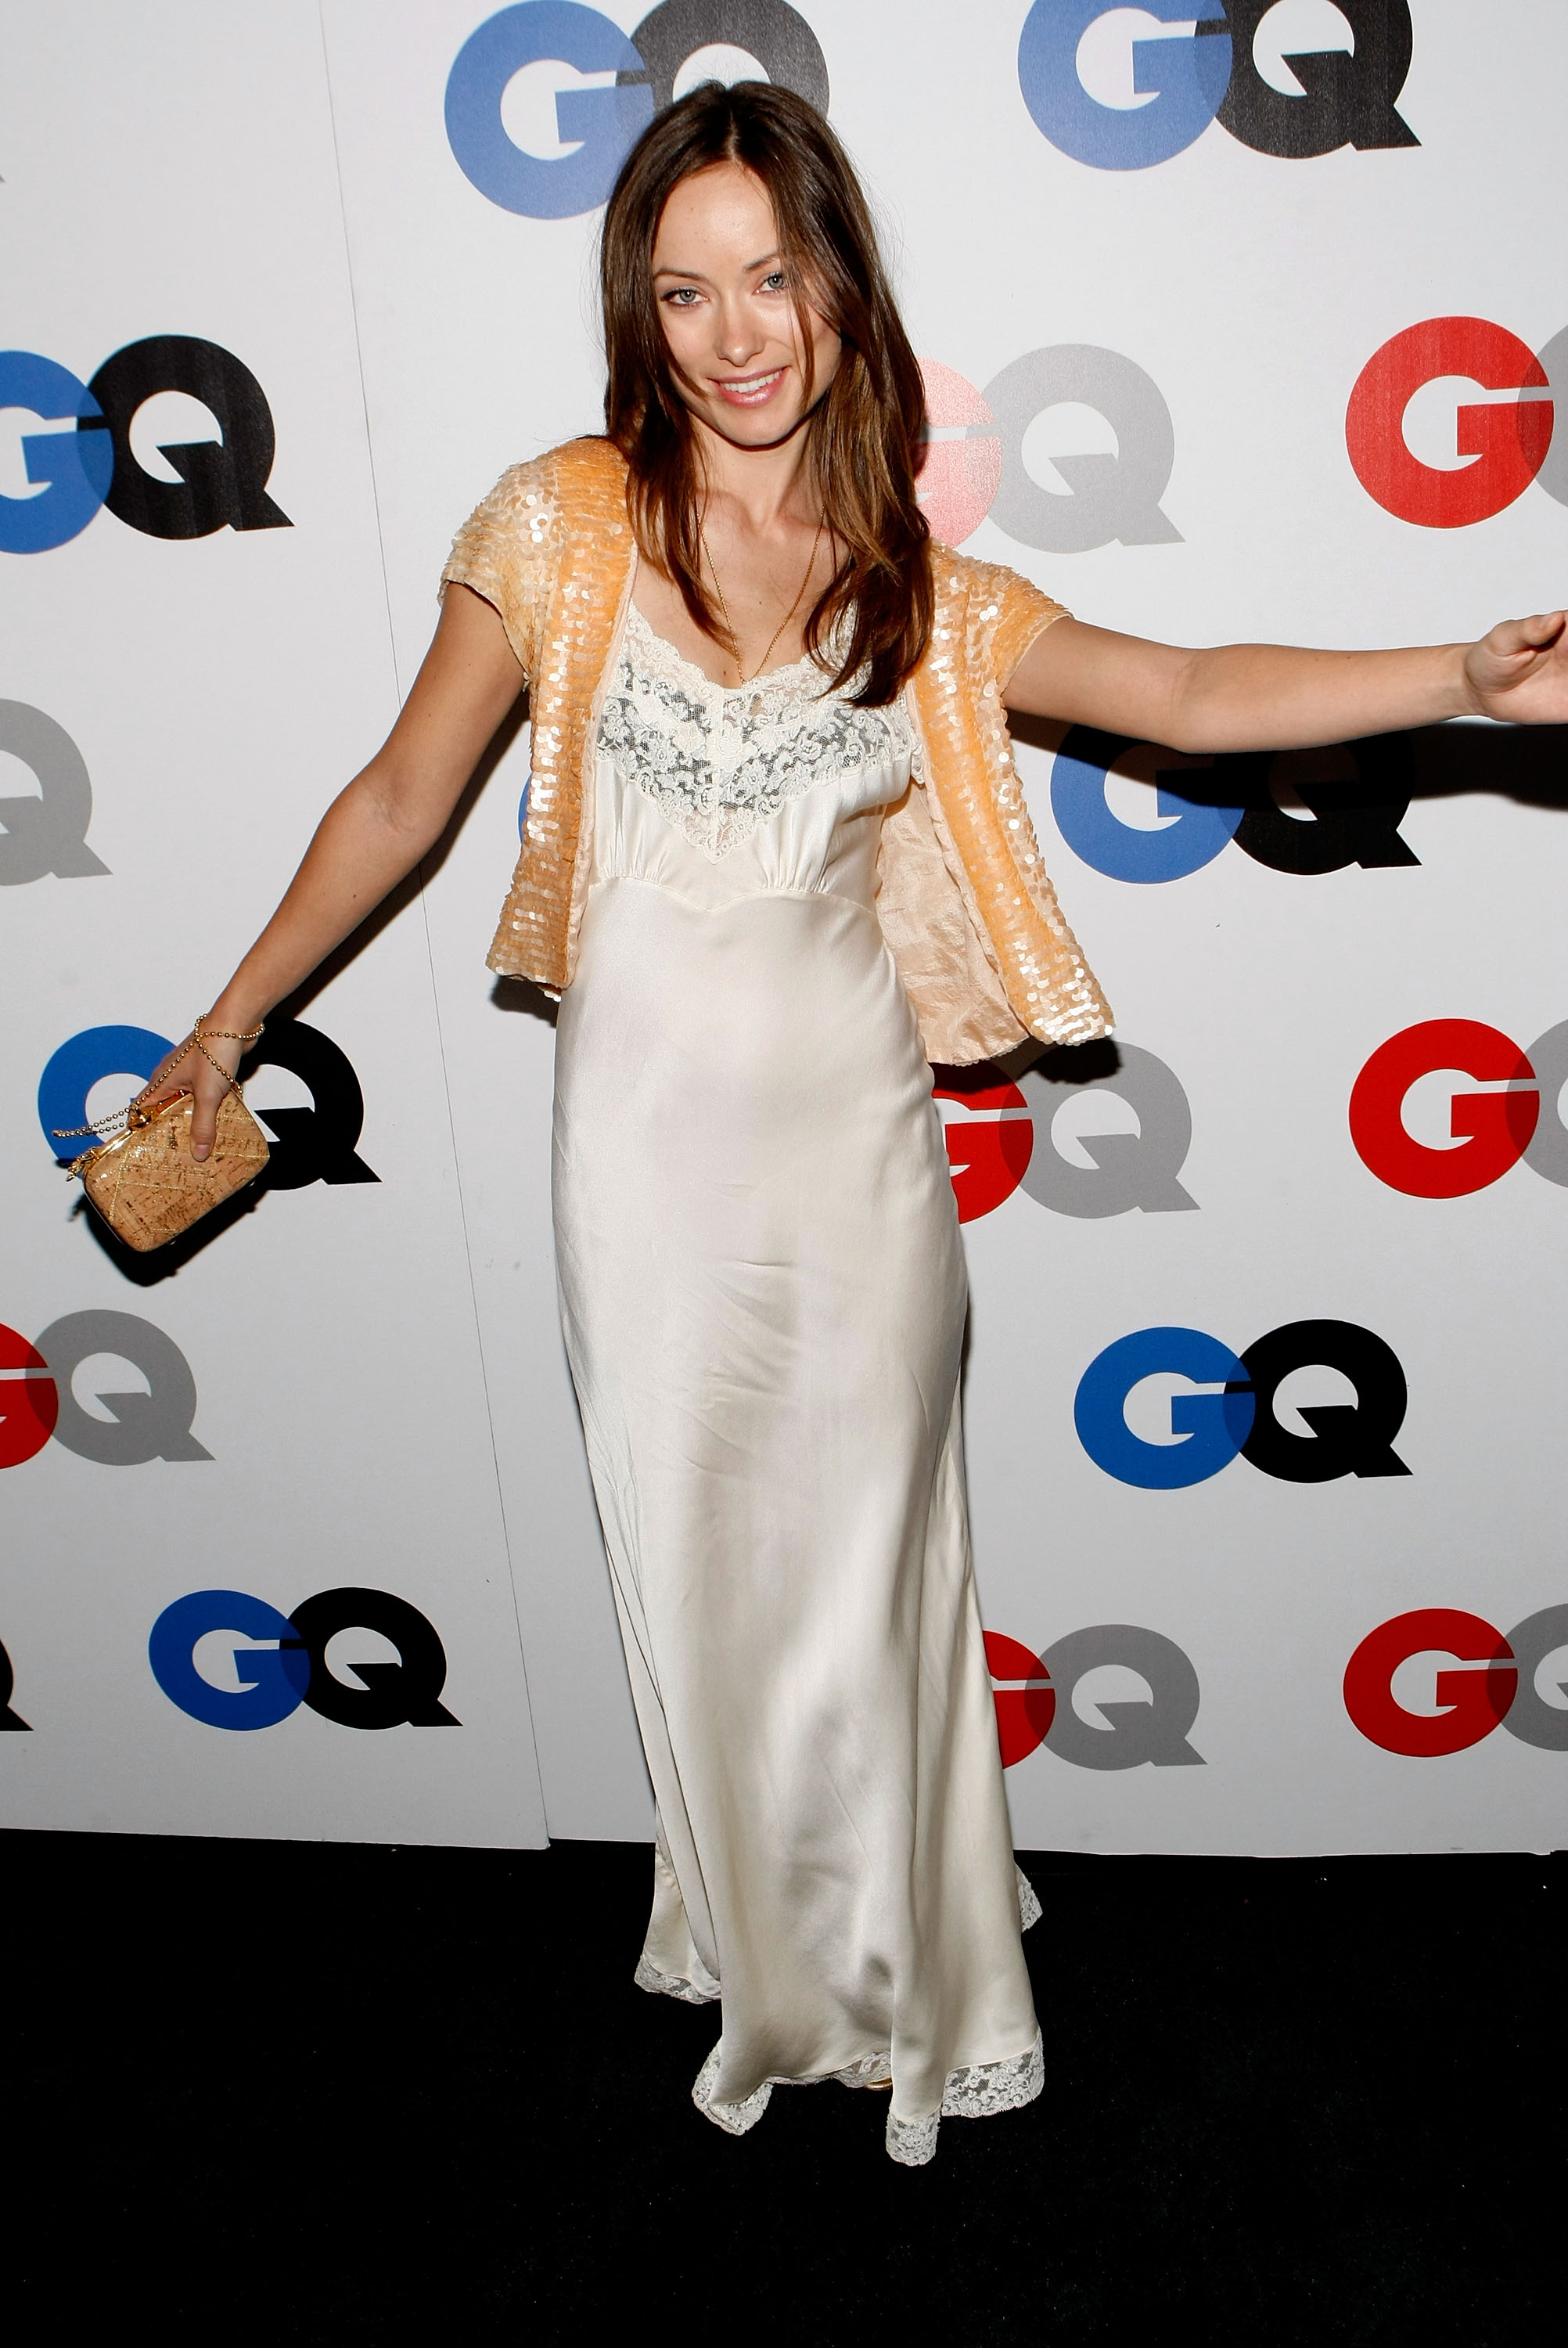 96086_Celebutopia-Olivia_Wilde-GQ_Men_of_the_Year_party-01_122_838lo.jpg